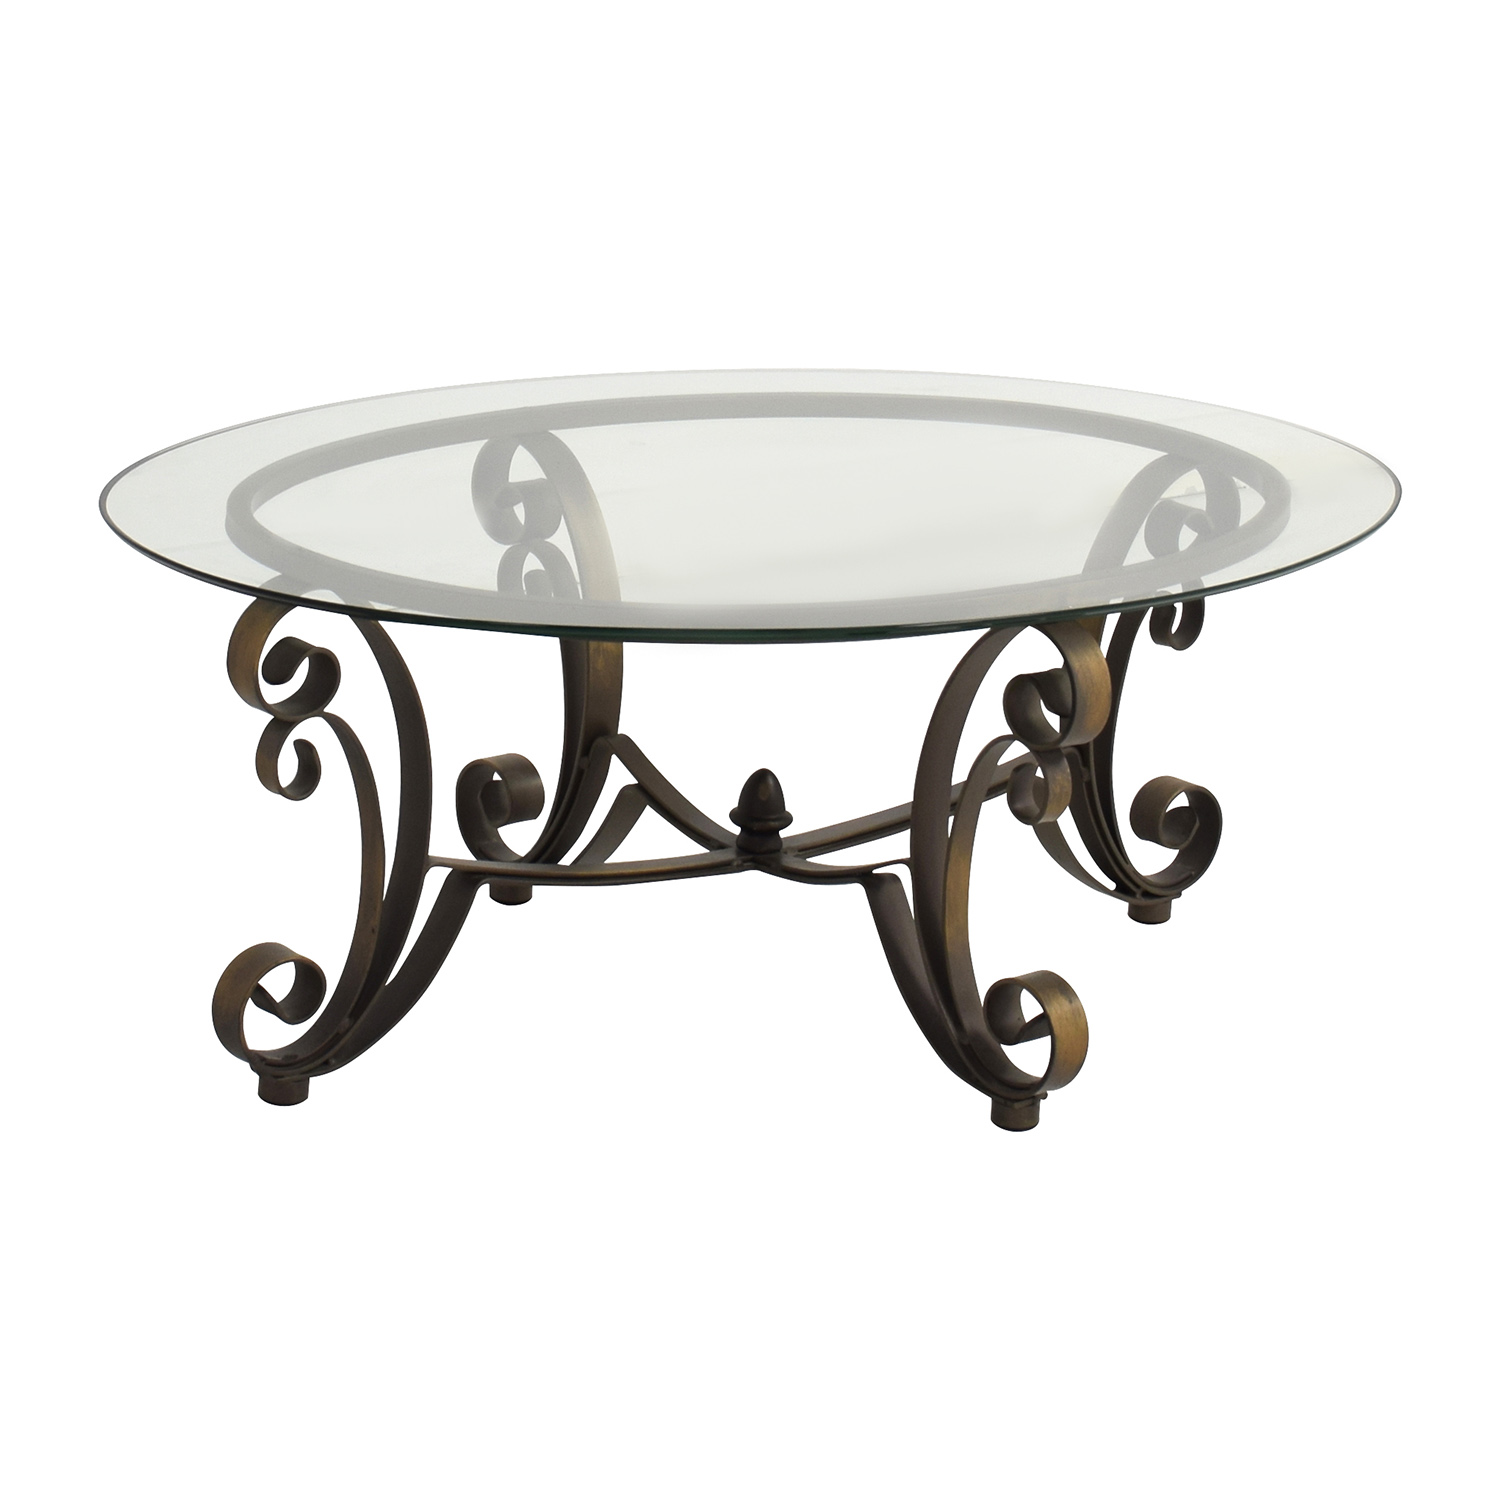 - 90% OFF - Rooms To Go Rooms To Go Metal Oval Coffee Table / Tables